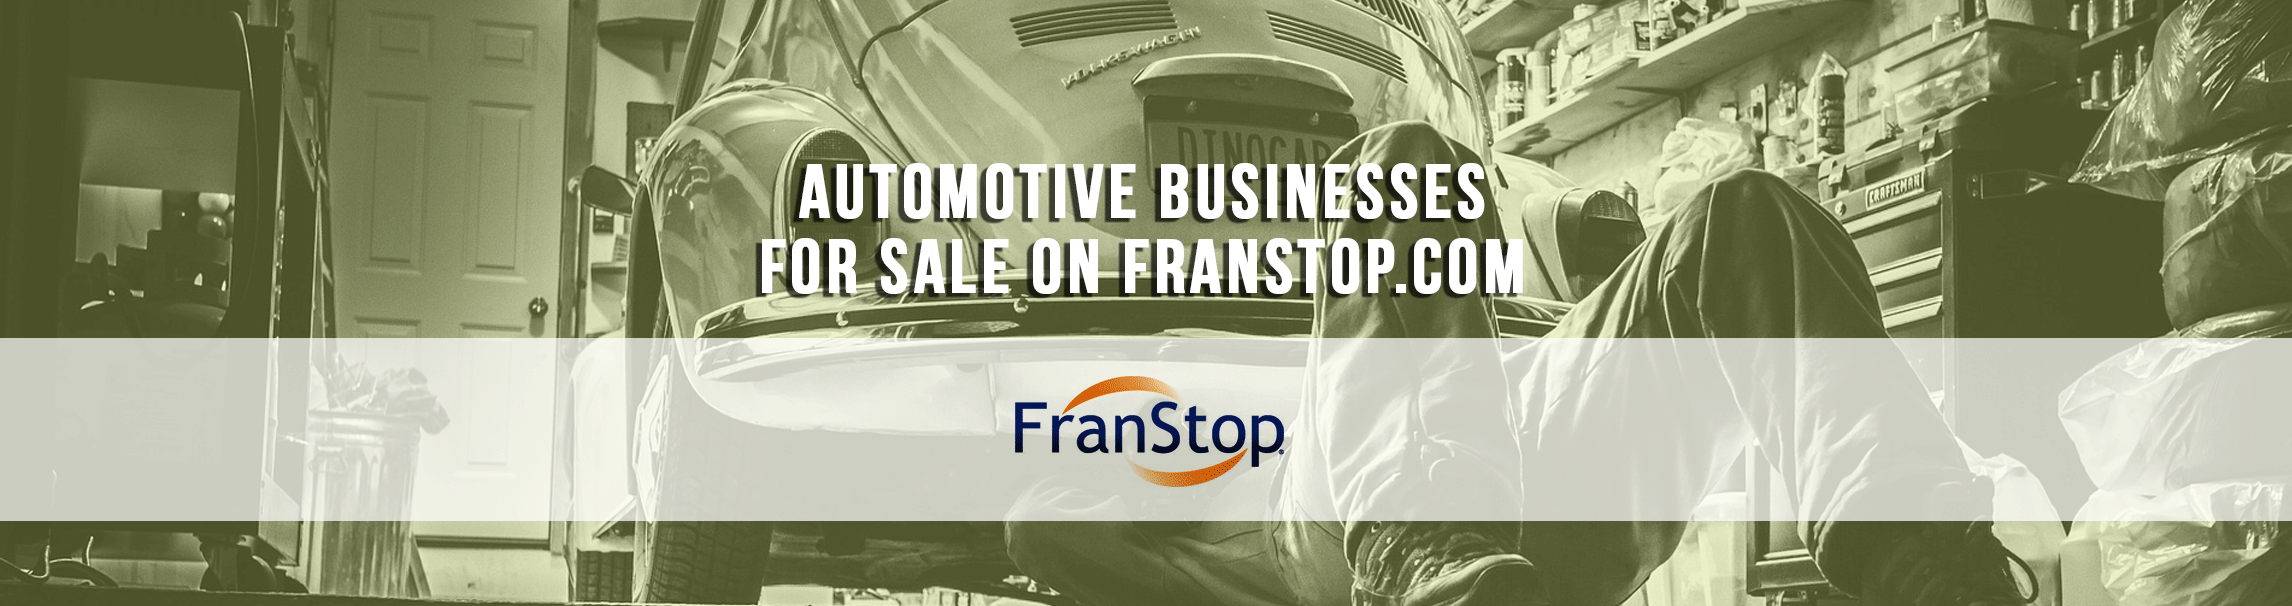 Automotive_Businesses_For_Sale_FranStop_Search_Franchise_Business_FranStop_franchise_for_sale